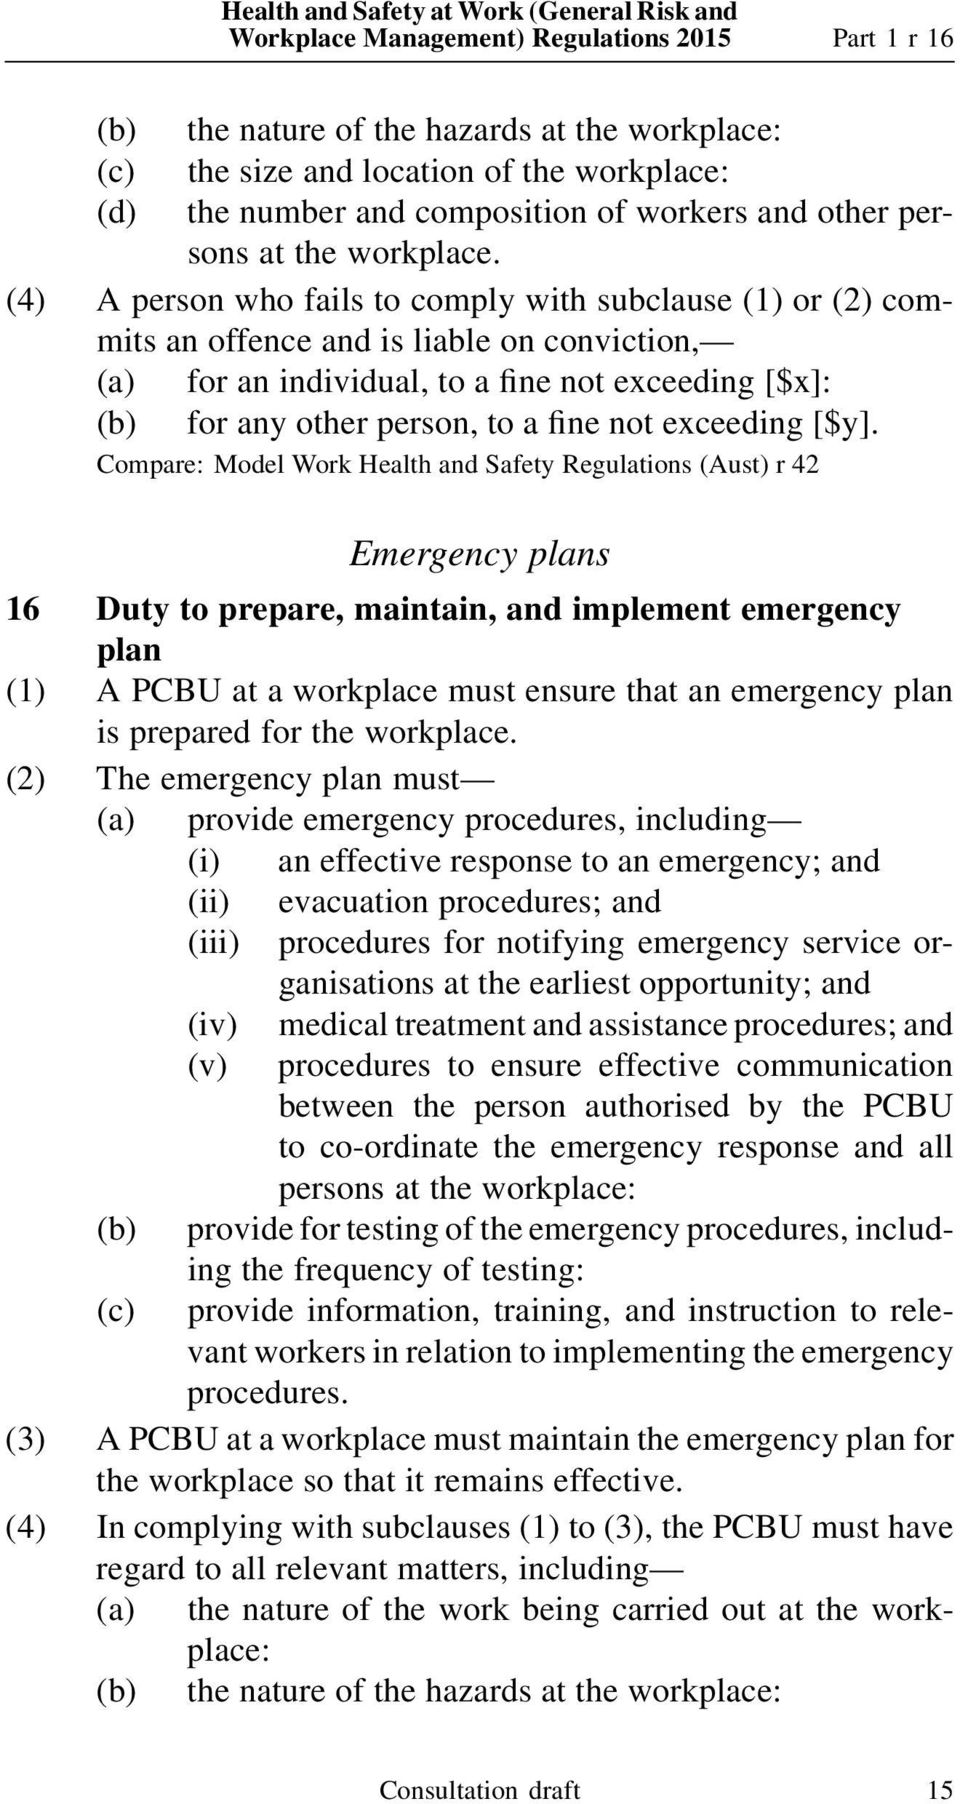 (4) A person who fails to comply with subclause (1) or (2) commits an Compare: Model Work Health and Safety Regulations (Aust) r 42 Emergency plans 16 Duty to prepare, maintain, and implement